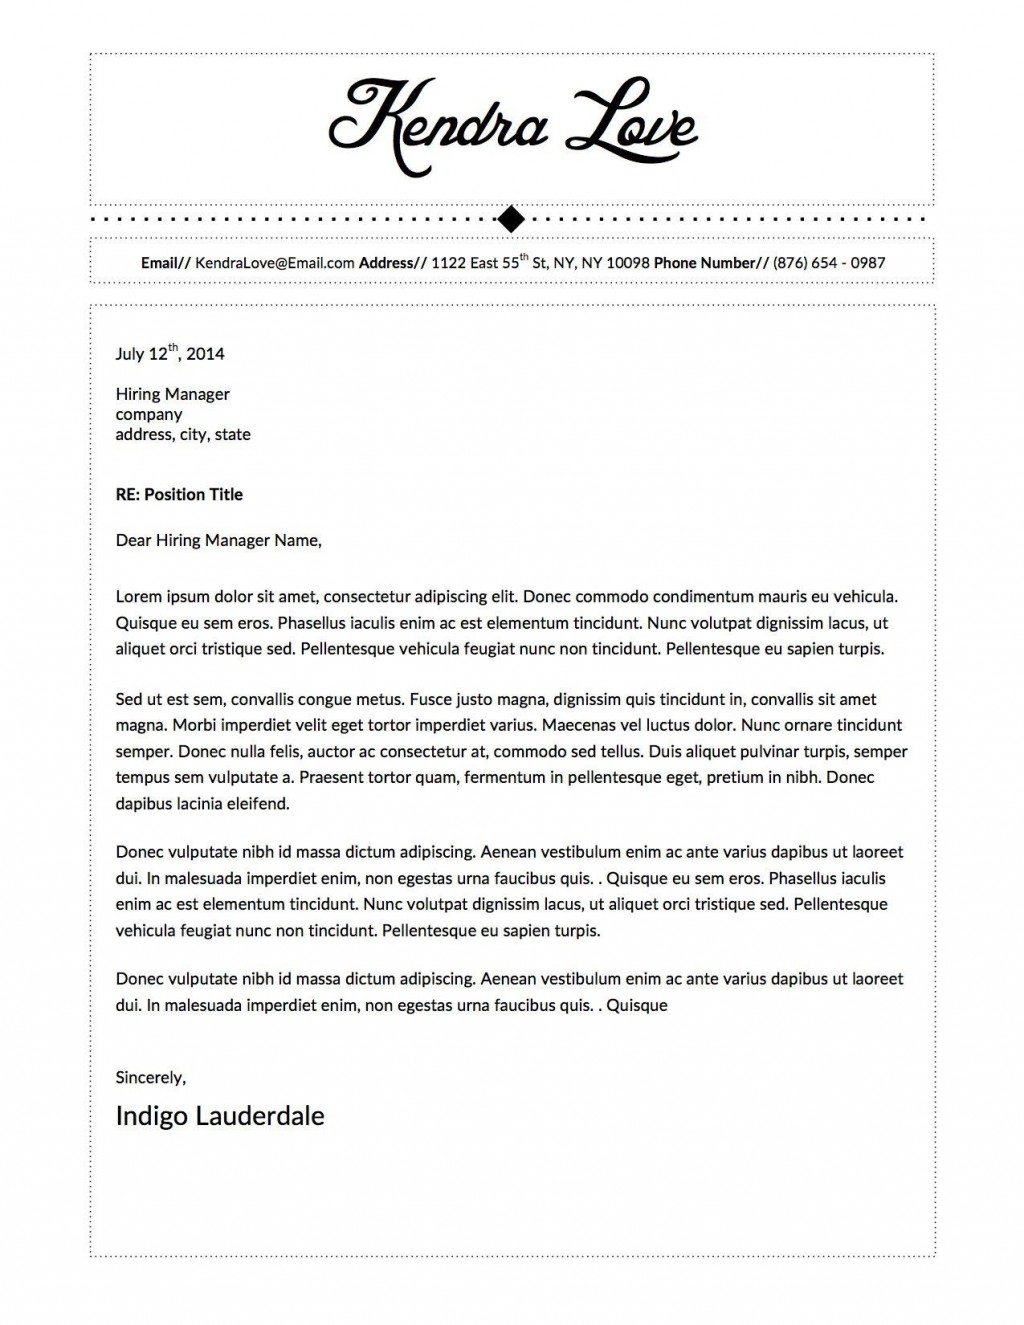 001 Simple Letter Template M Word Image  Fax Cover Microsoft Busines AuthorizationLarge